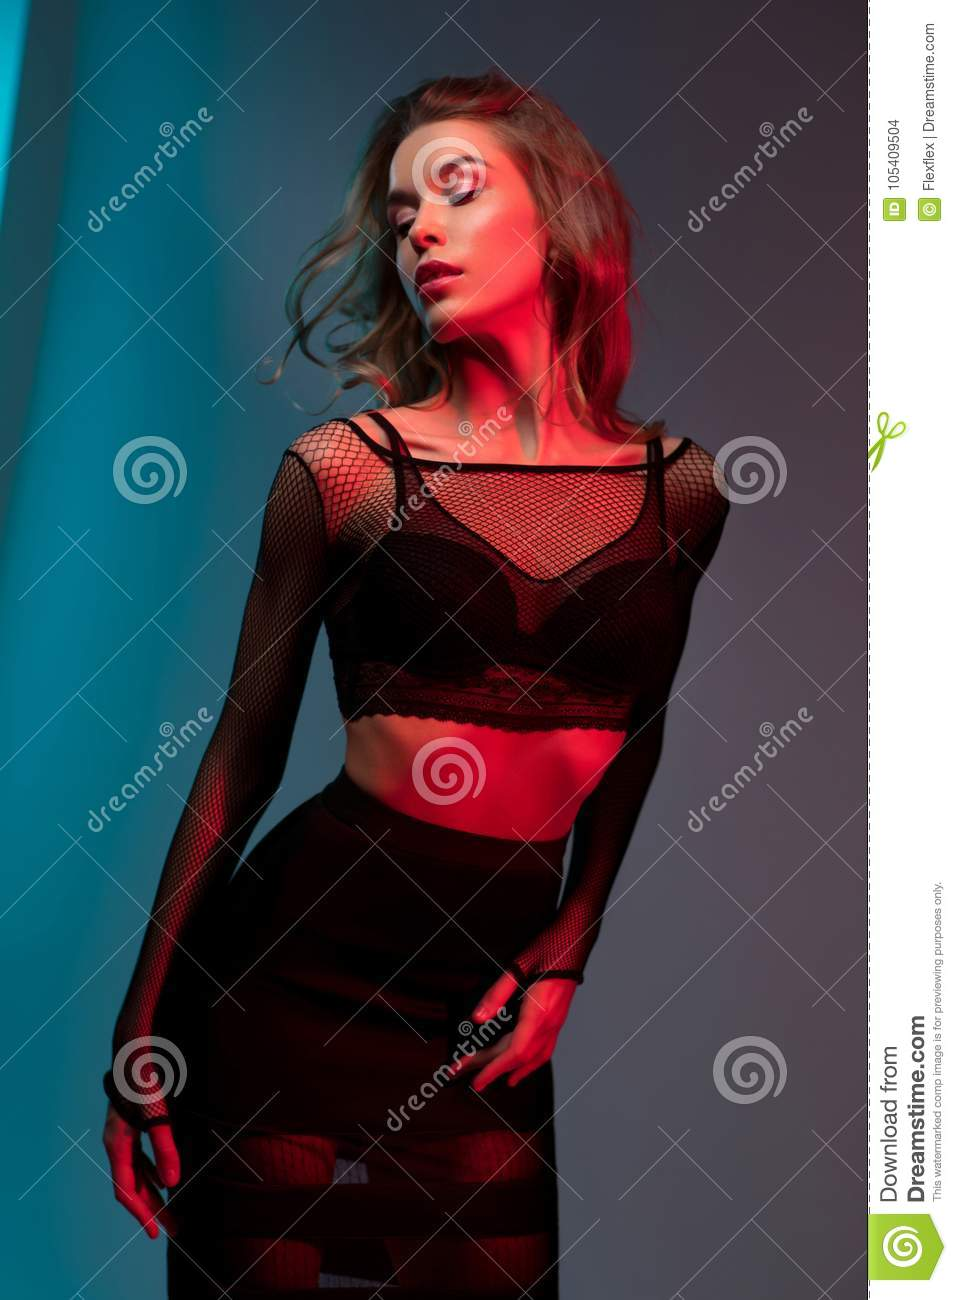 Woman in fashion top and skirt